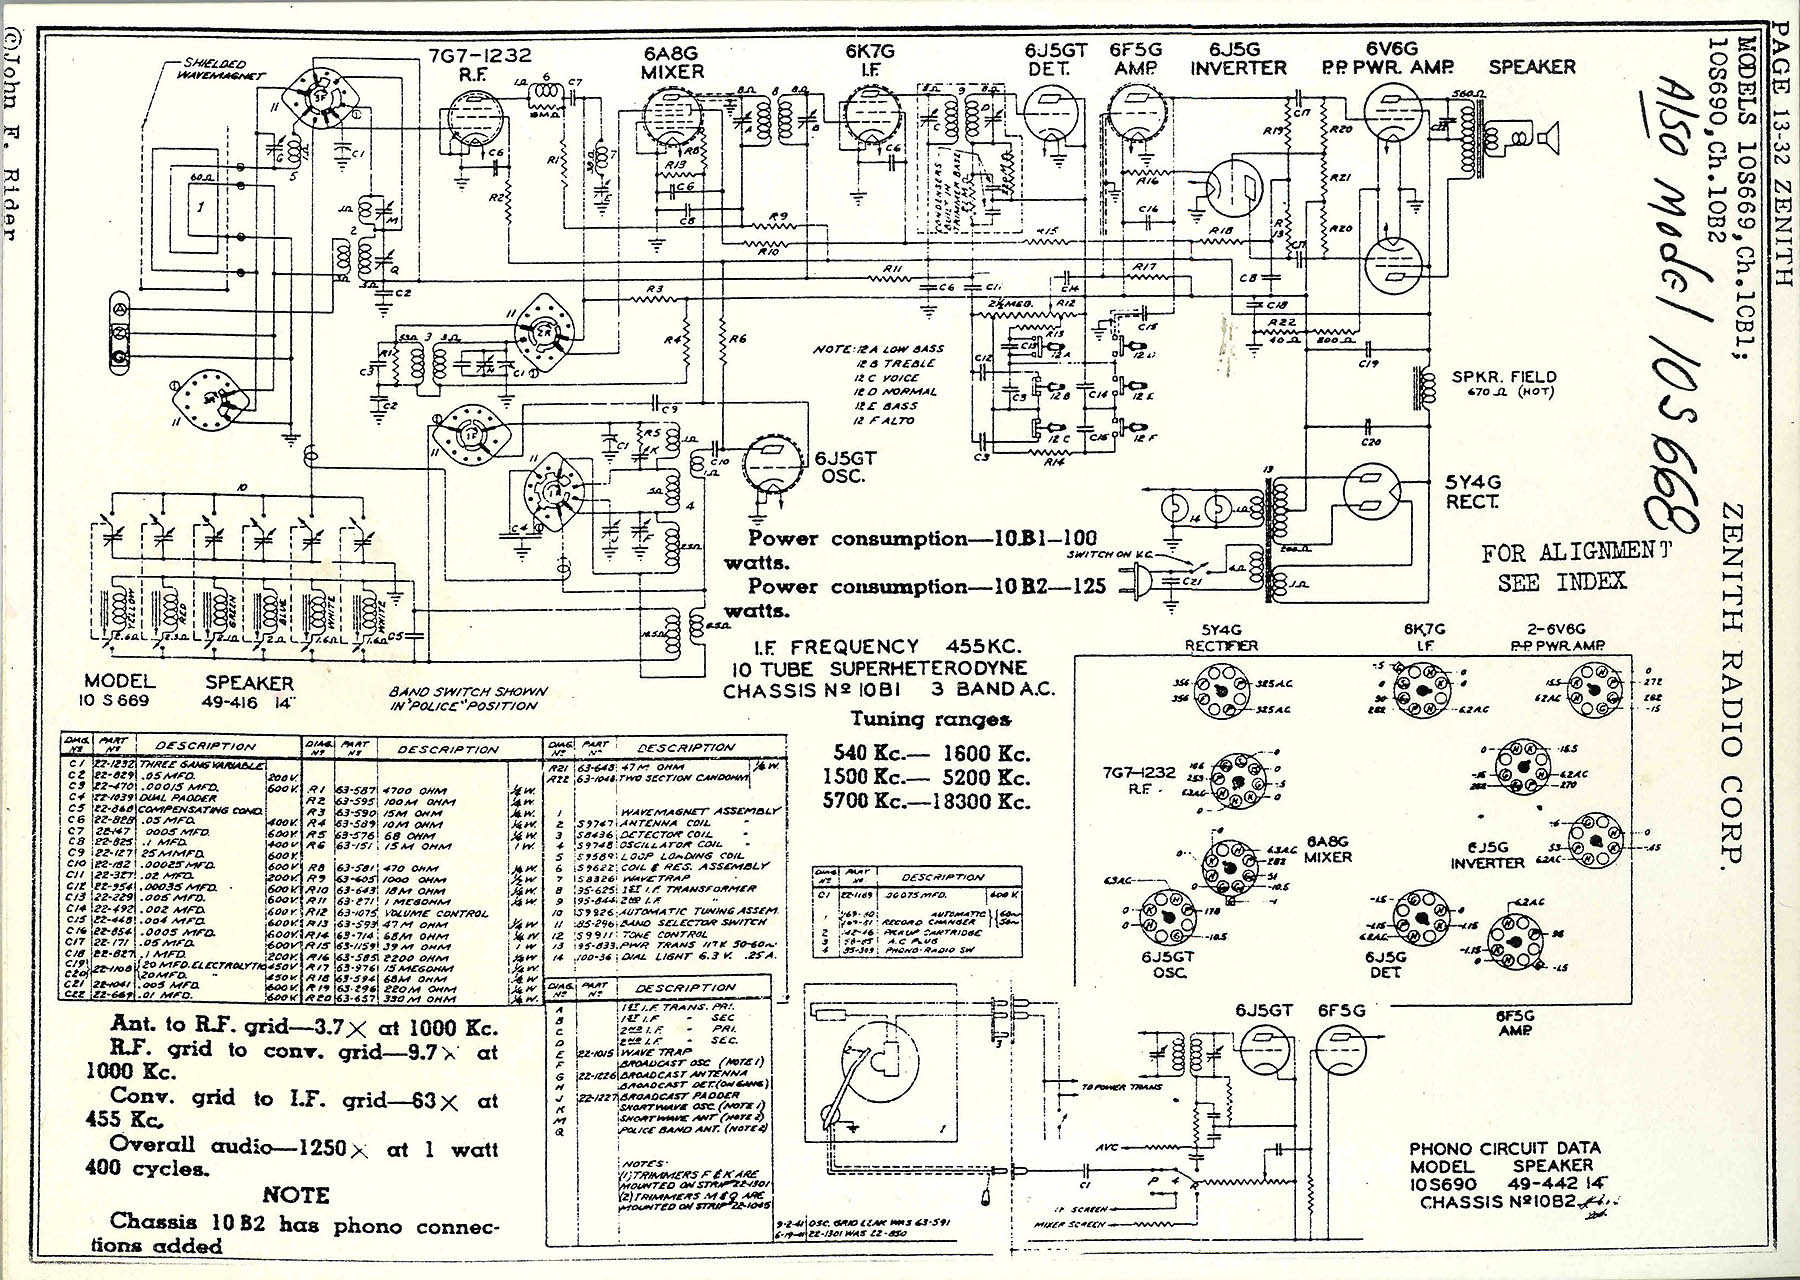 Circuit Diagram For The 1938 Zenith Model 10s668 Console Radio A Wire This 10 Tube 3 Band Tunes Broadcast Shortwave Signals From 550 Khz To 18mhz